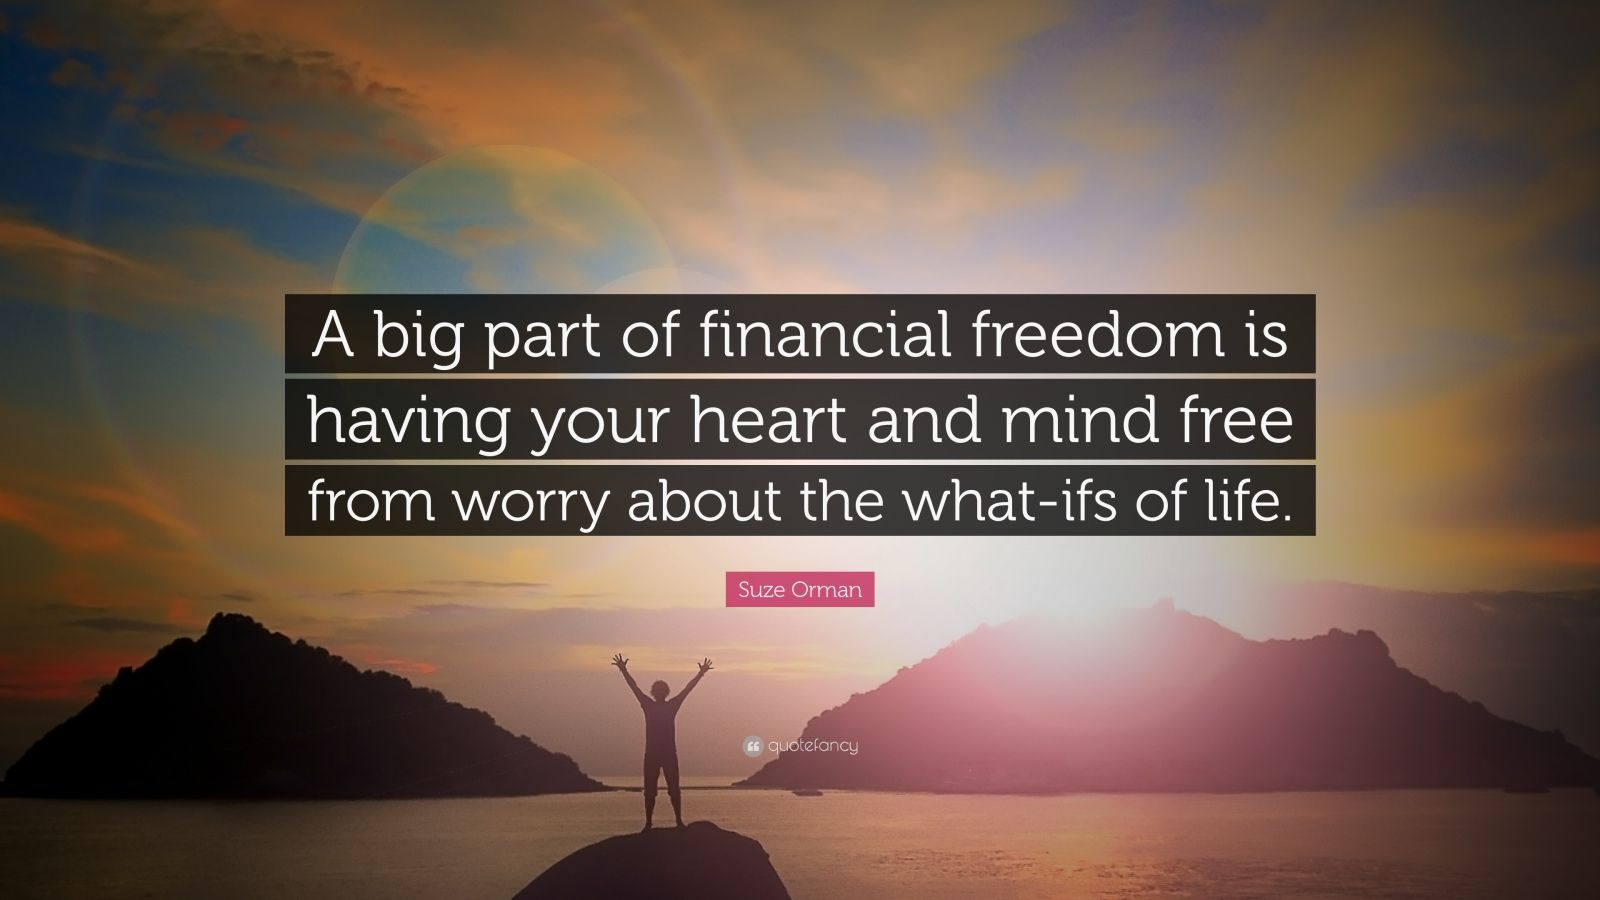 Financial Freedom Quotes Beauteous Suze Orman Quotes 100 Wallpapers  Quotefancy